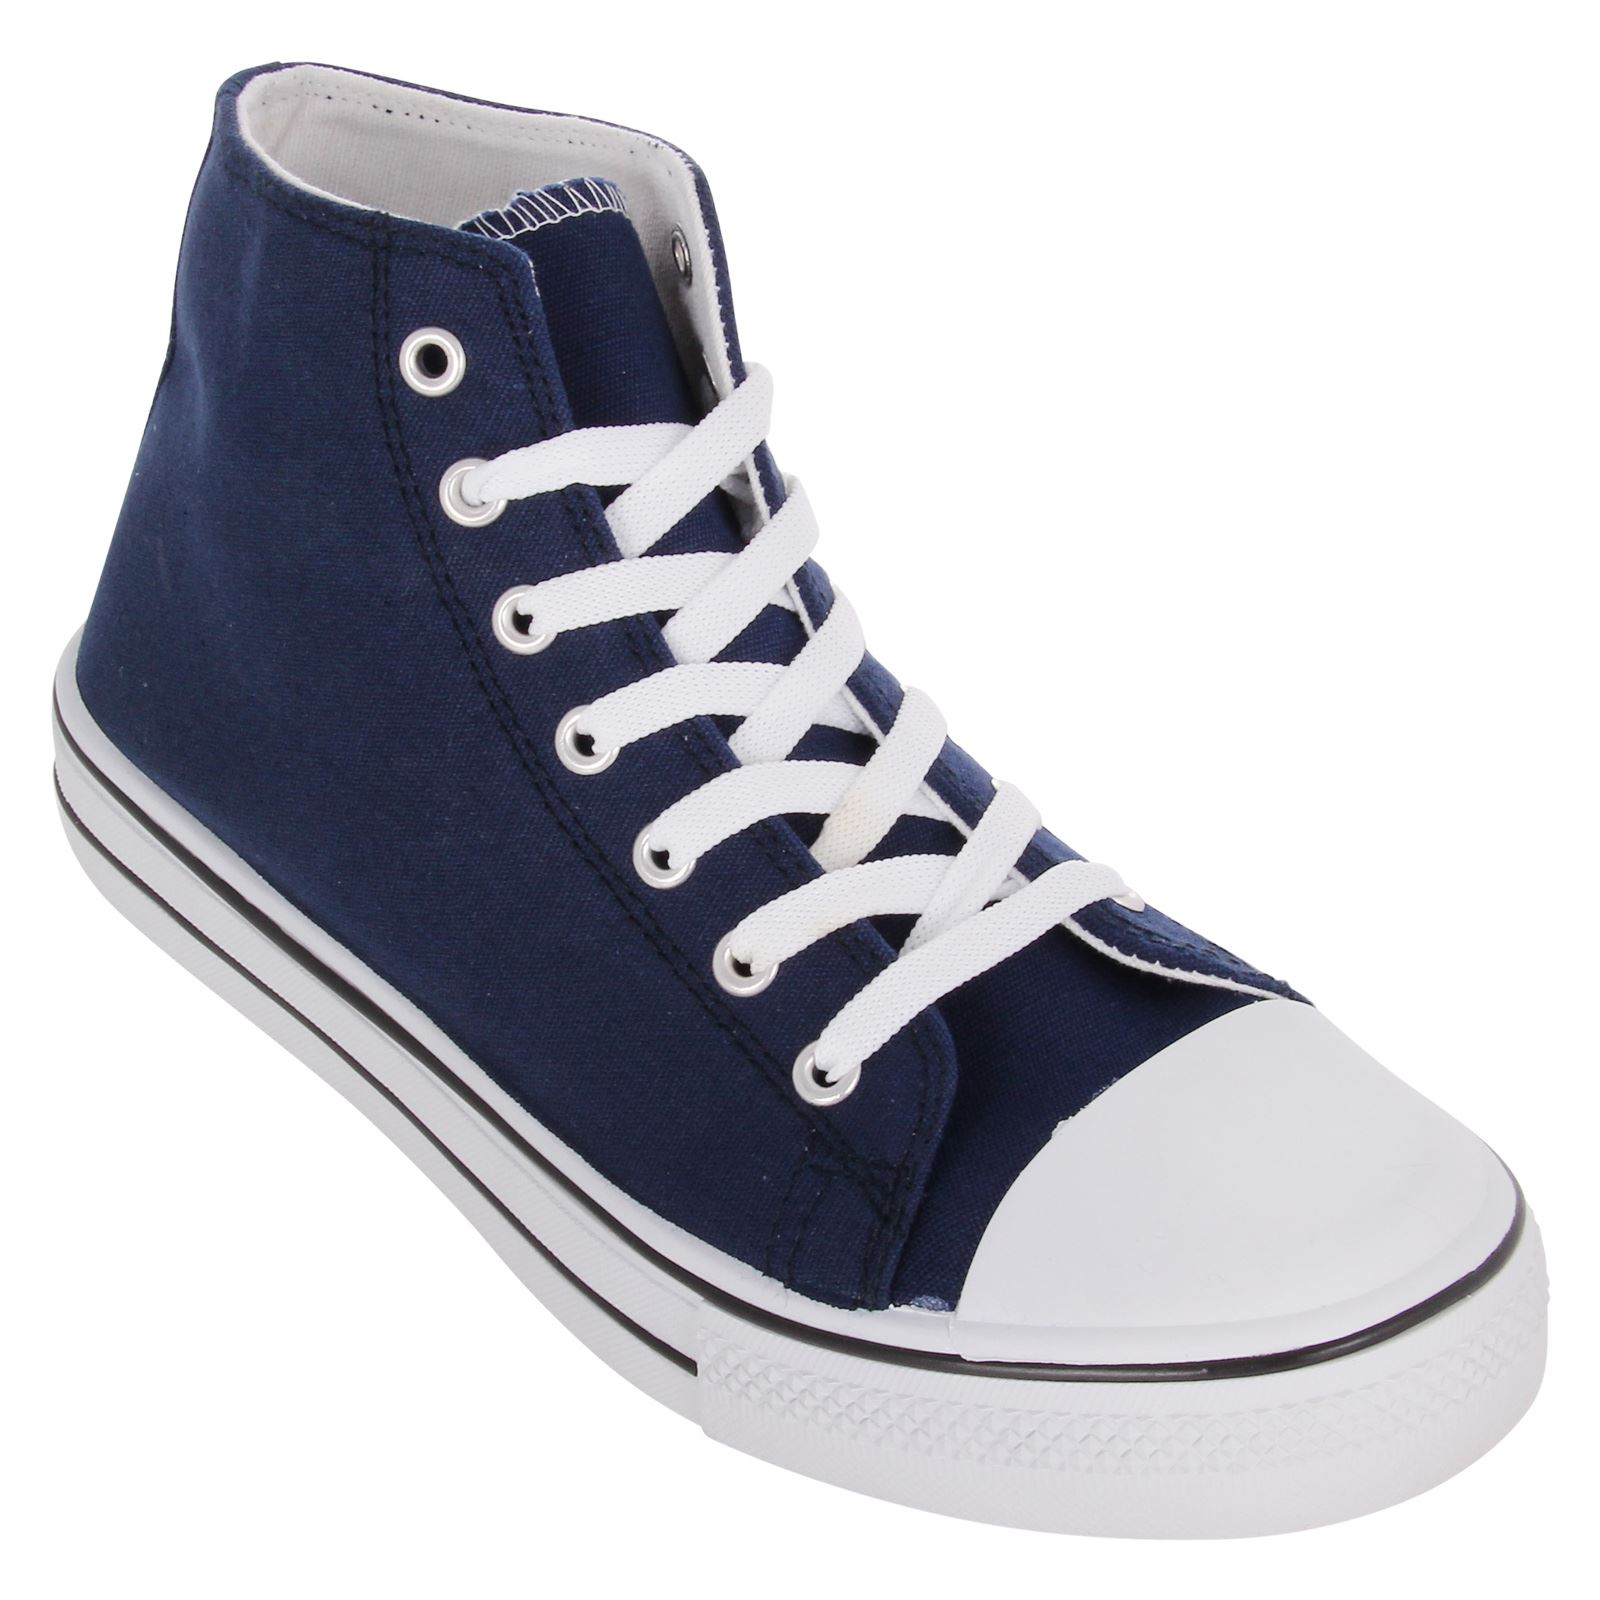 Mens Classic Hi Tops Low Ankle Boots Trainers Shoes Pumps ...